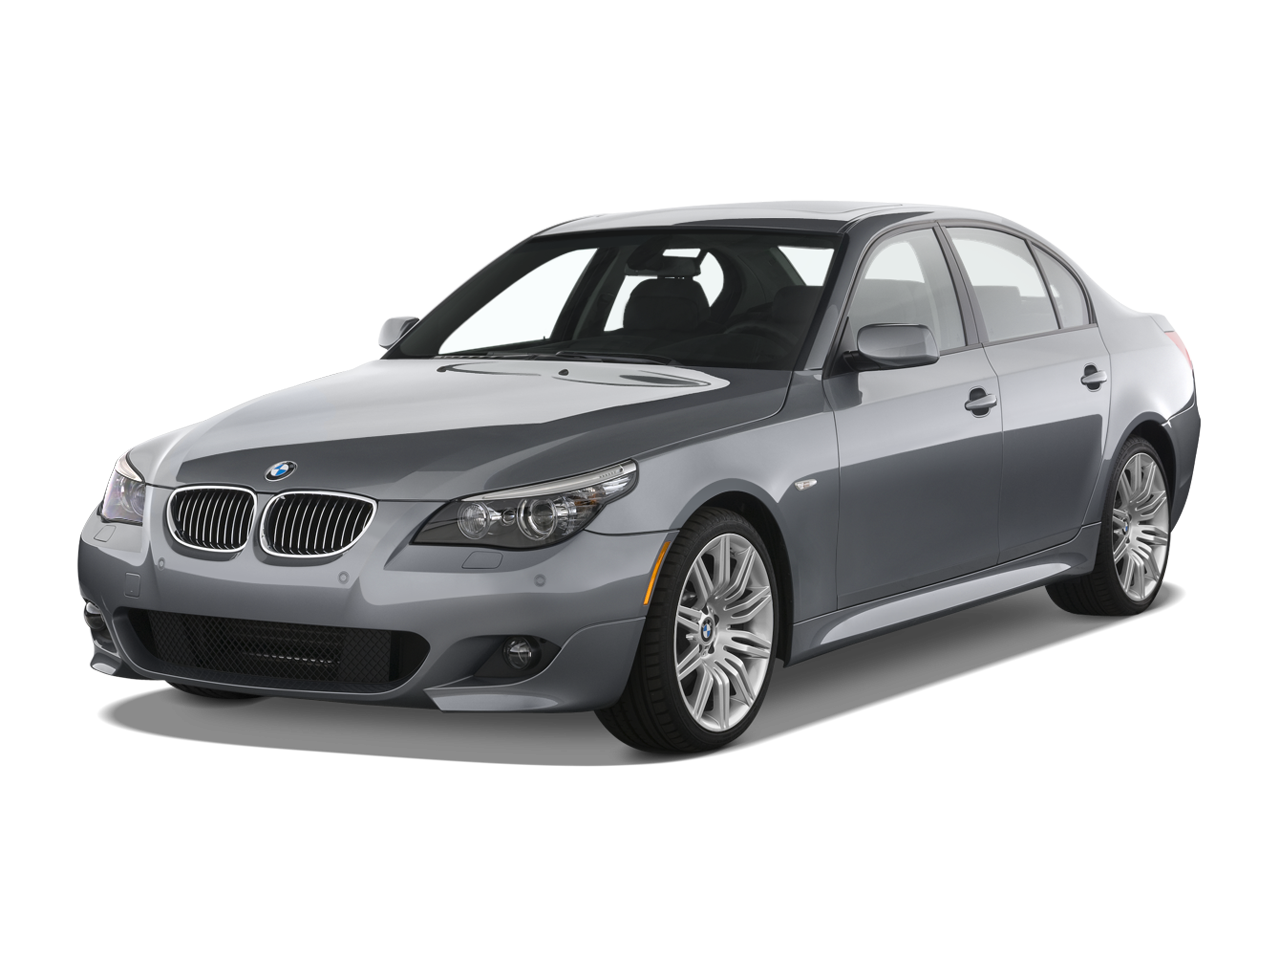 2010 bmw 535i gran turismo bmw luxury sport sedan review. Black Bedroom Furniture Sets. Home Design Ideas